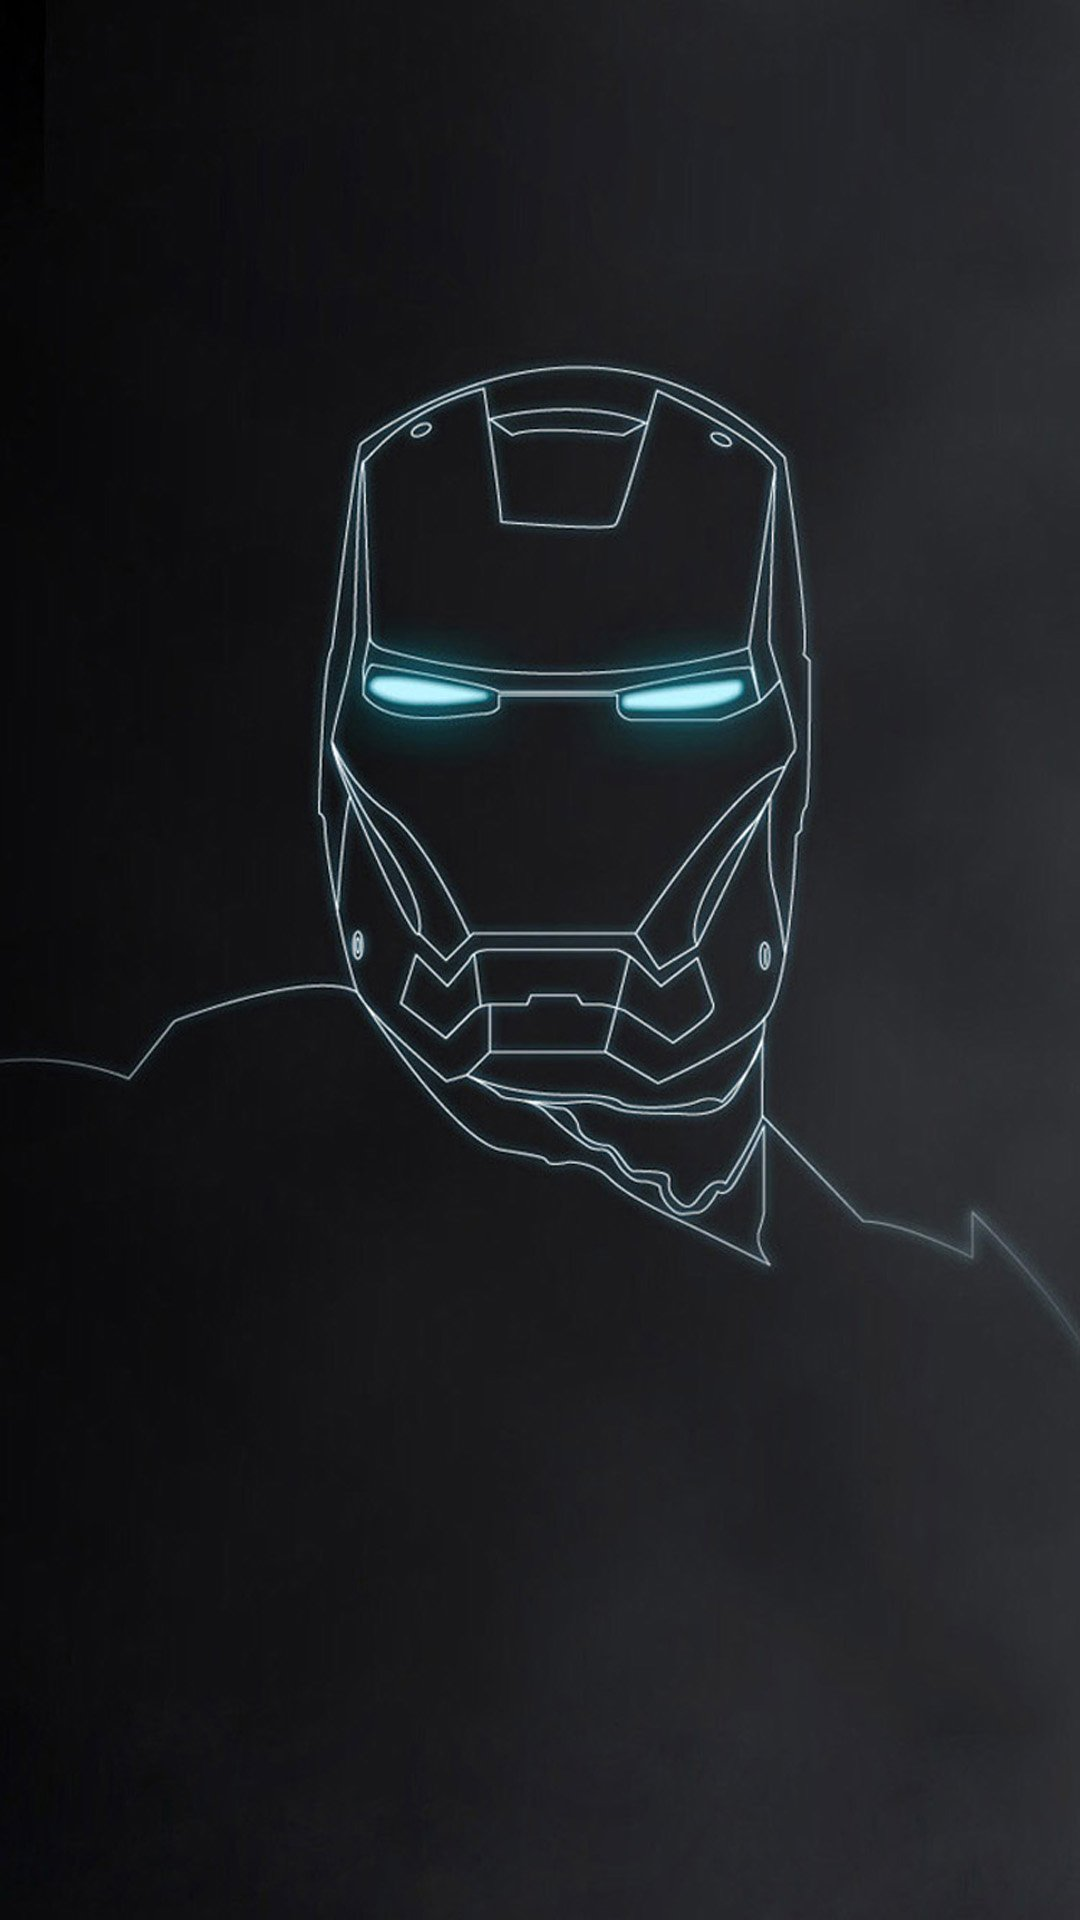 Iron Man 3 Movie iPhone 6 Wallpaper and iPhone 6 Plus Wallpapers 1080x1920